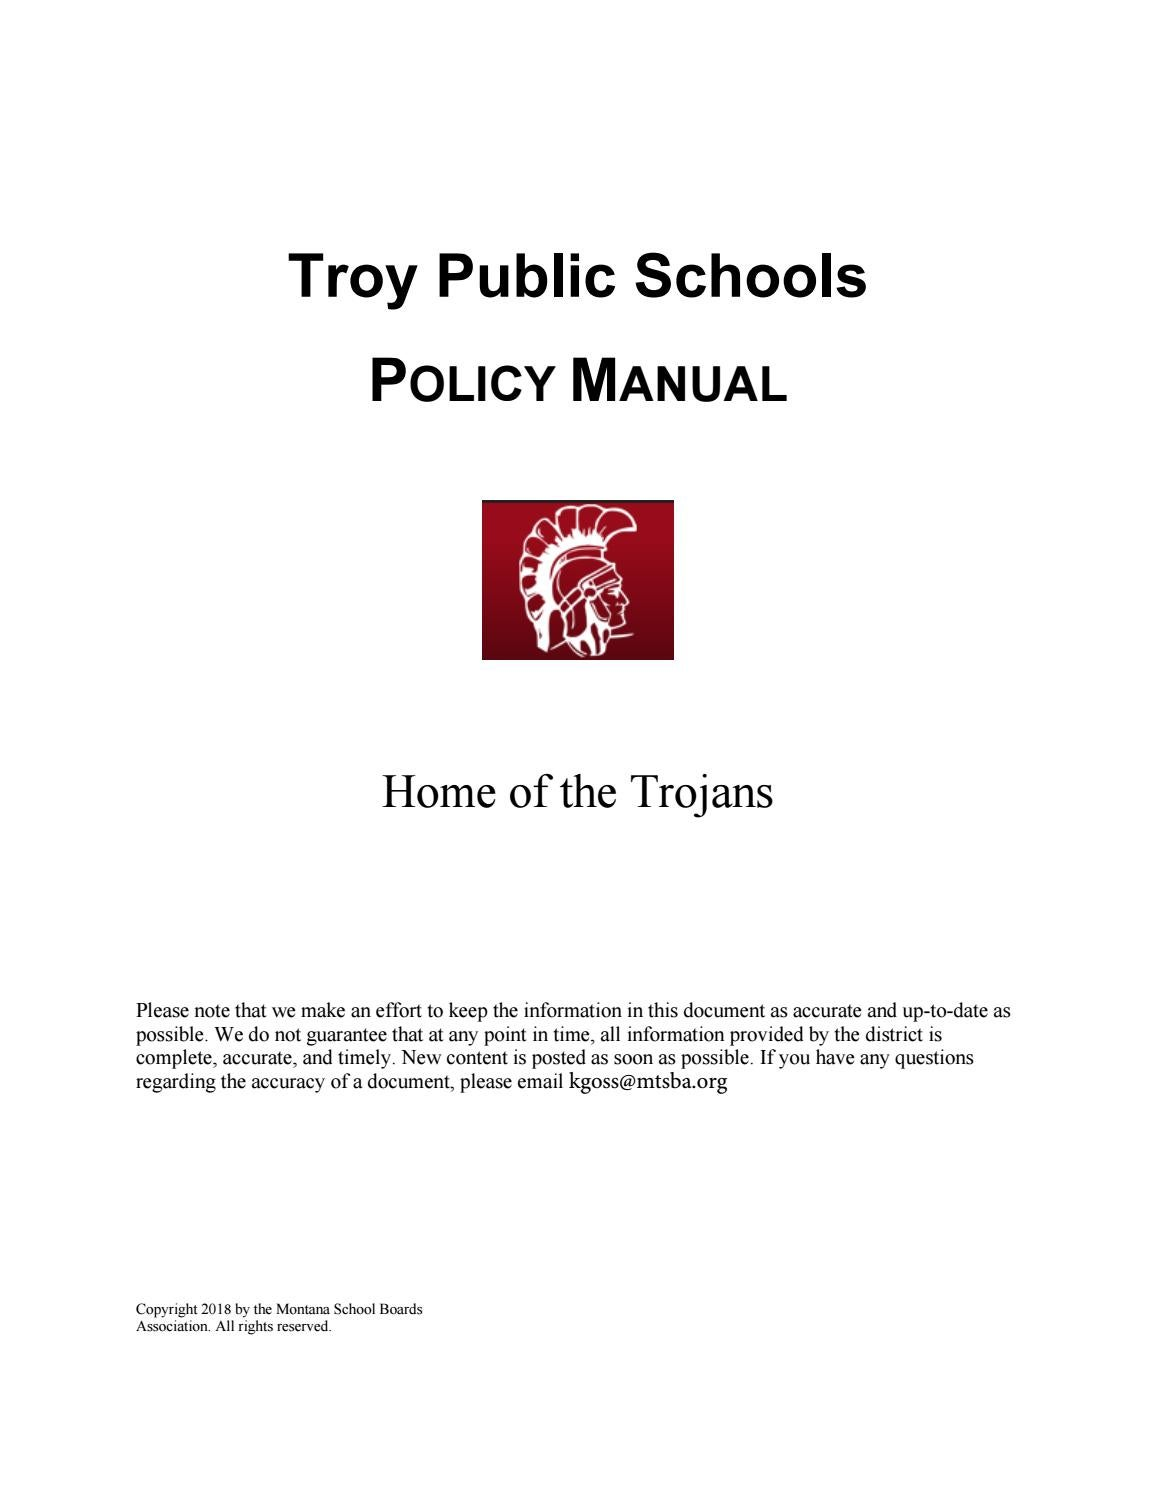 Troy Public Schools Policy Manual by Montana School Boards